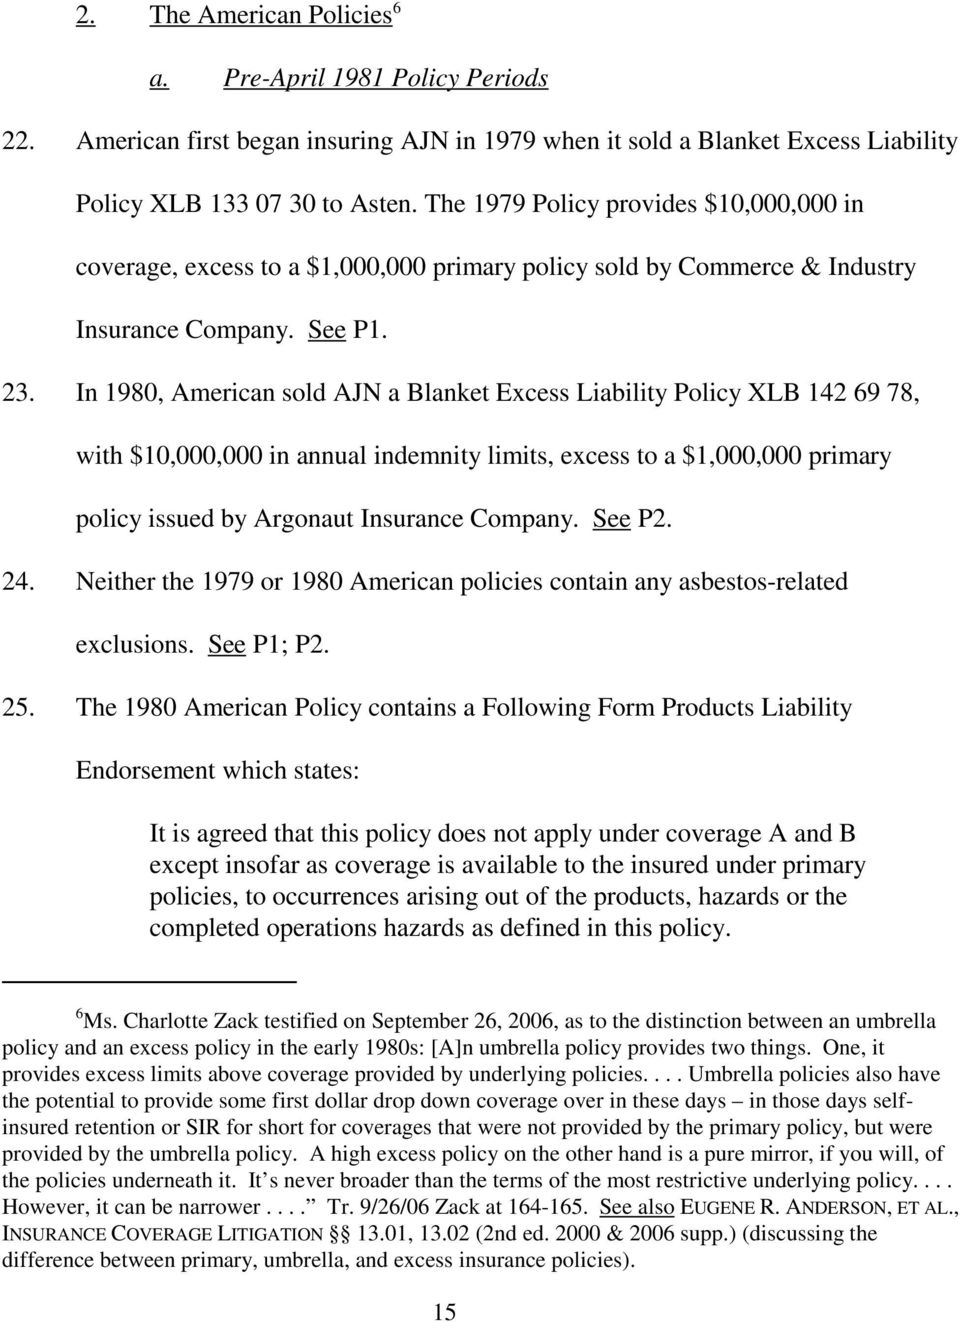 In 1980, American sold AJN a Blanket Excess Liability Policy XLB 142 69 78, with $10,000,000 in annual indemnity limits, excess to a $1,000,000 primary policy issued by Argonaut Insurance Company.